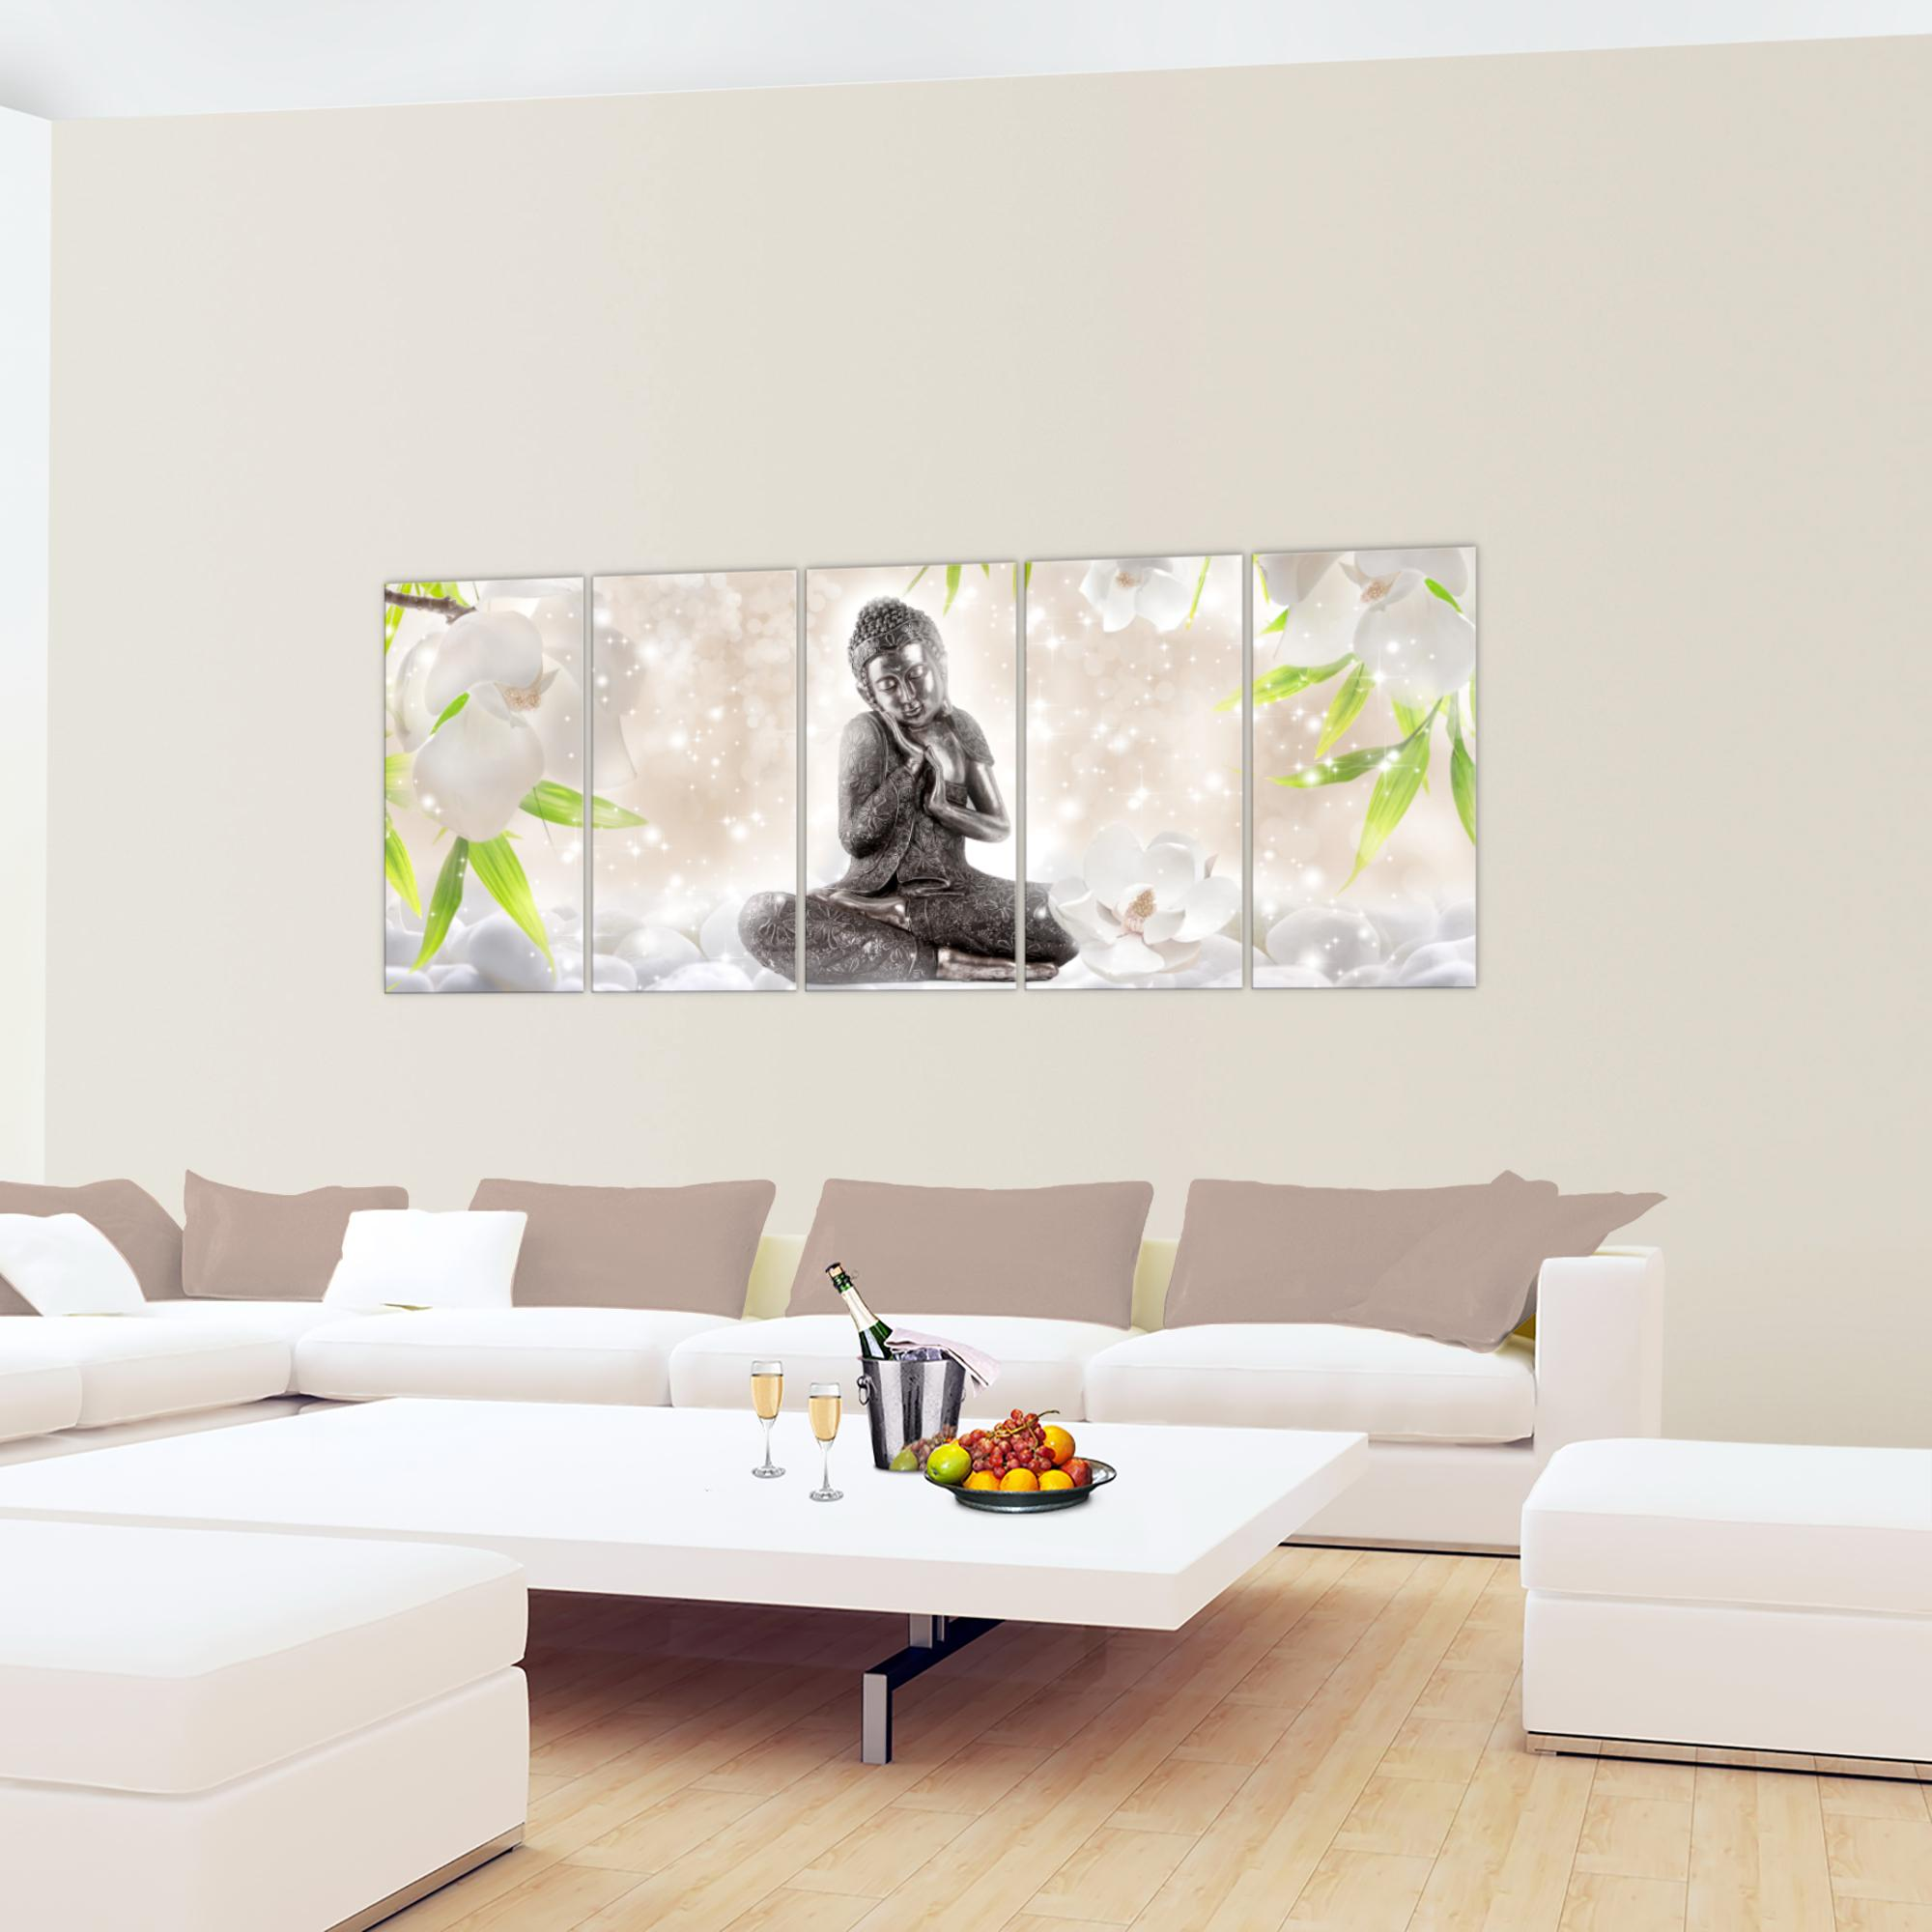 feng shui buddha bild kunstdruck auf vlies leinwand xxl dekoration 019155p. Black Bedroom Furniture Sets. Home Design Ideas